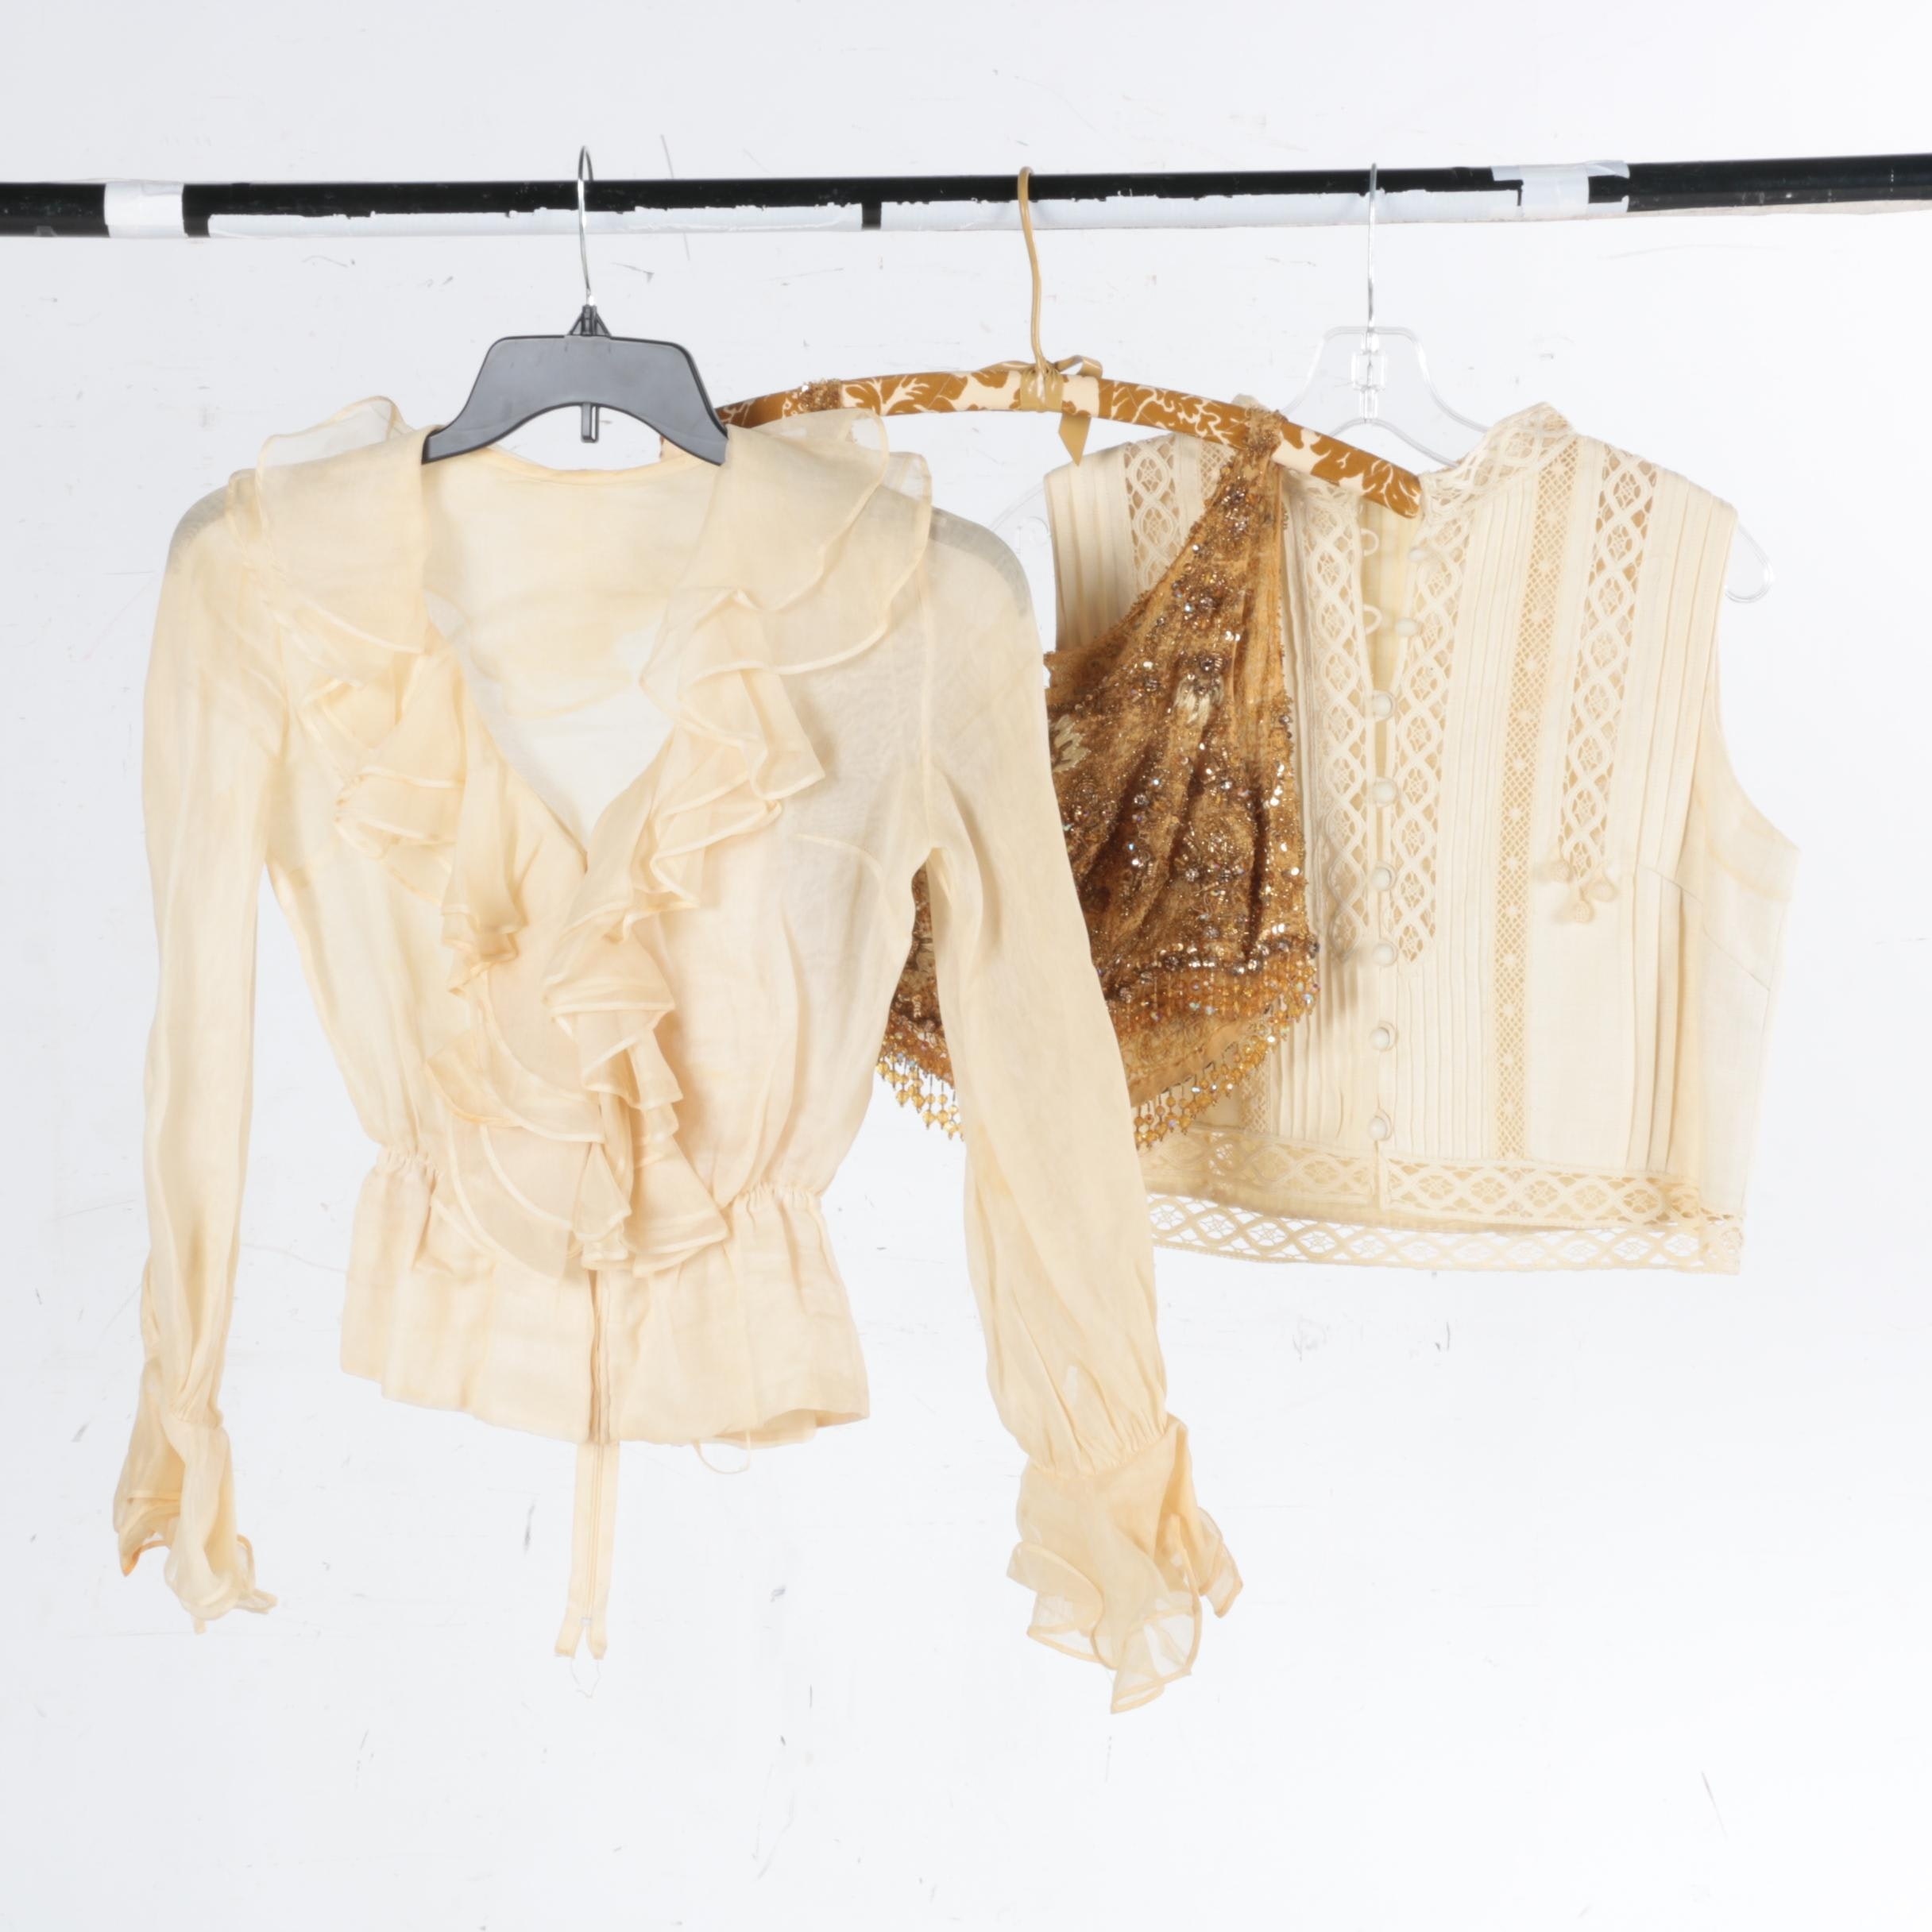 Women's Vintage Tops Including Linen, Chiffon, and Beaded